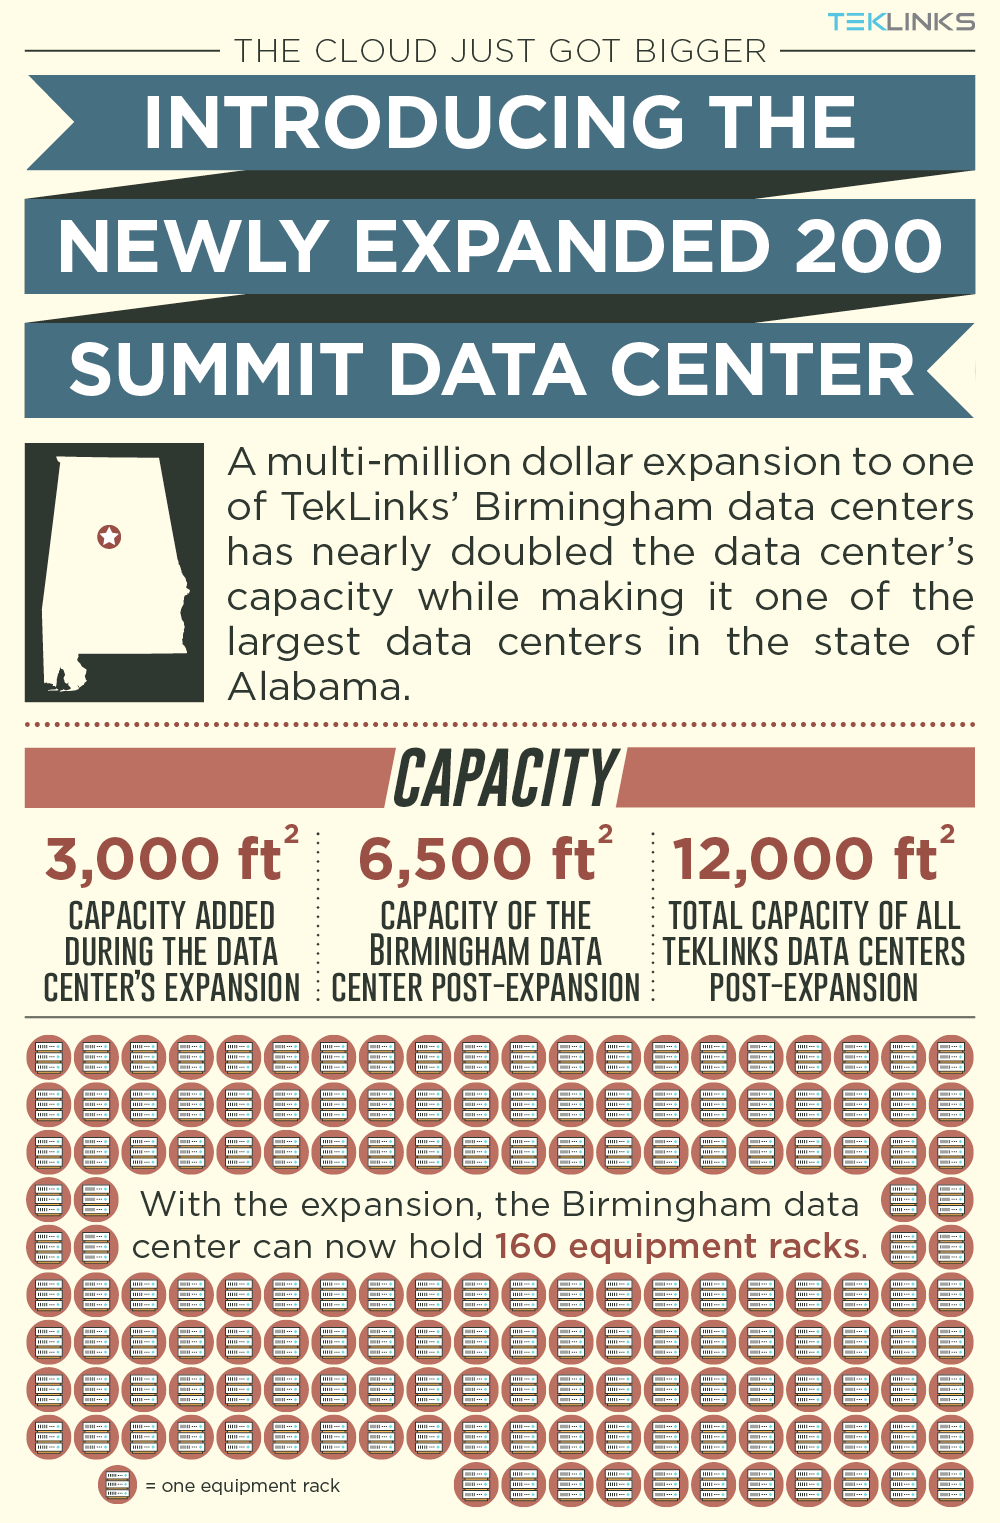 Preview of the data center expansion infographic.